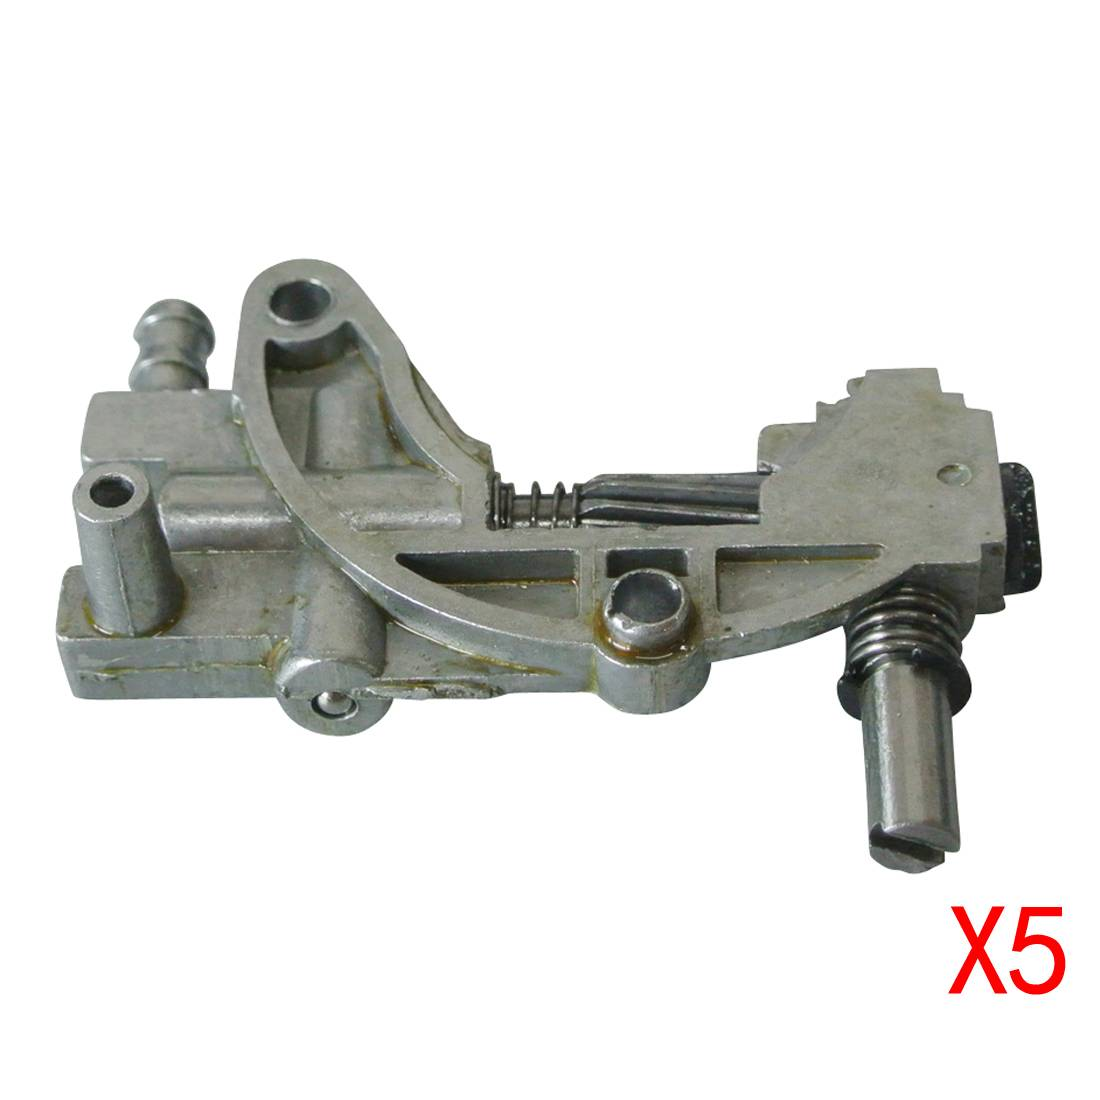 5X OIL PUMP FOR Chinese CHAINSAW 4500 5200 5800 45CC 52CC 58CC